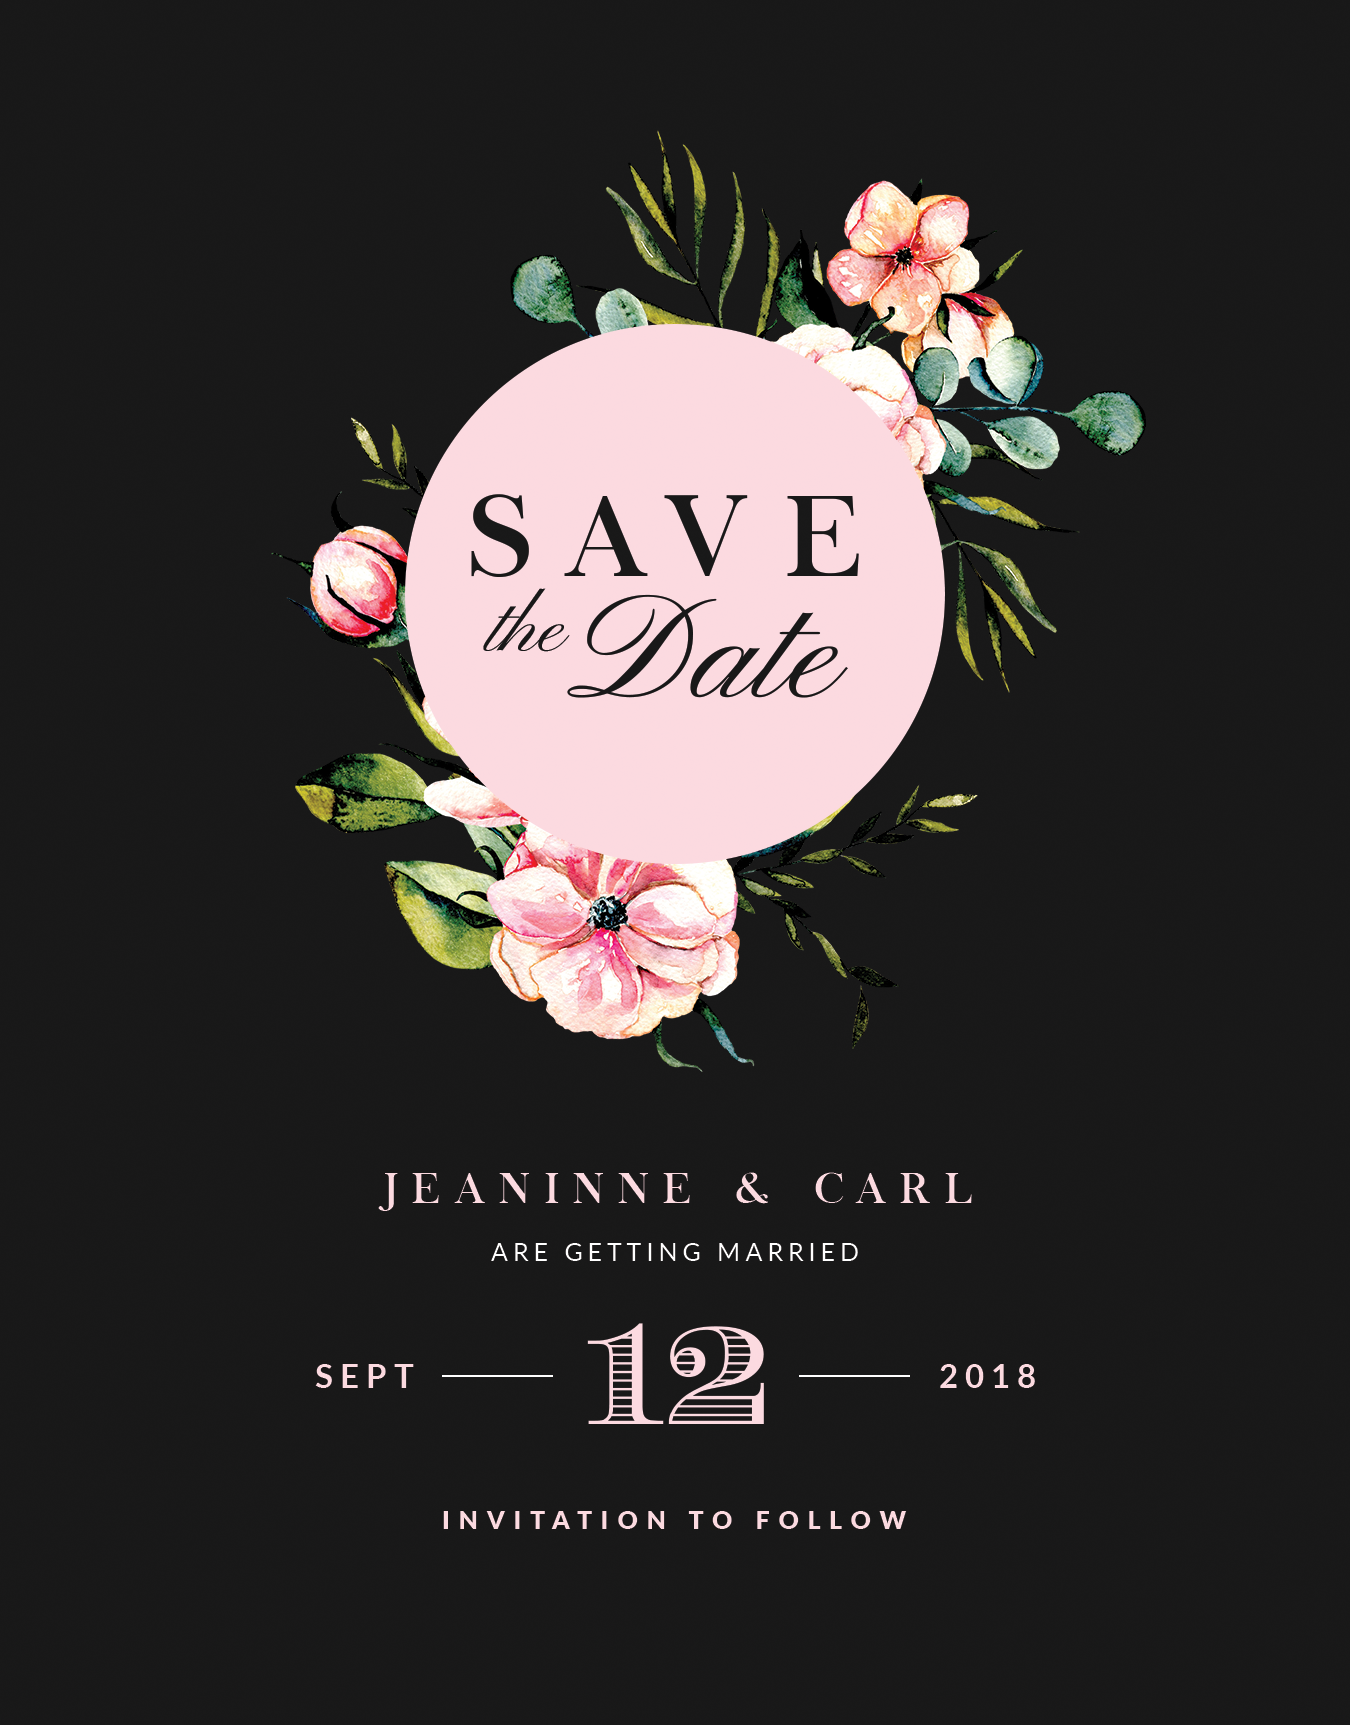 Save The Date - US A2 CARD SIZE - COLOR 2_RGB.png